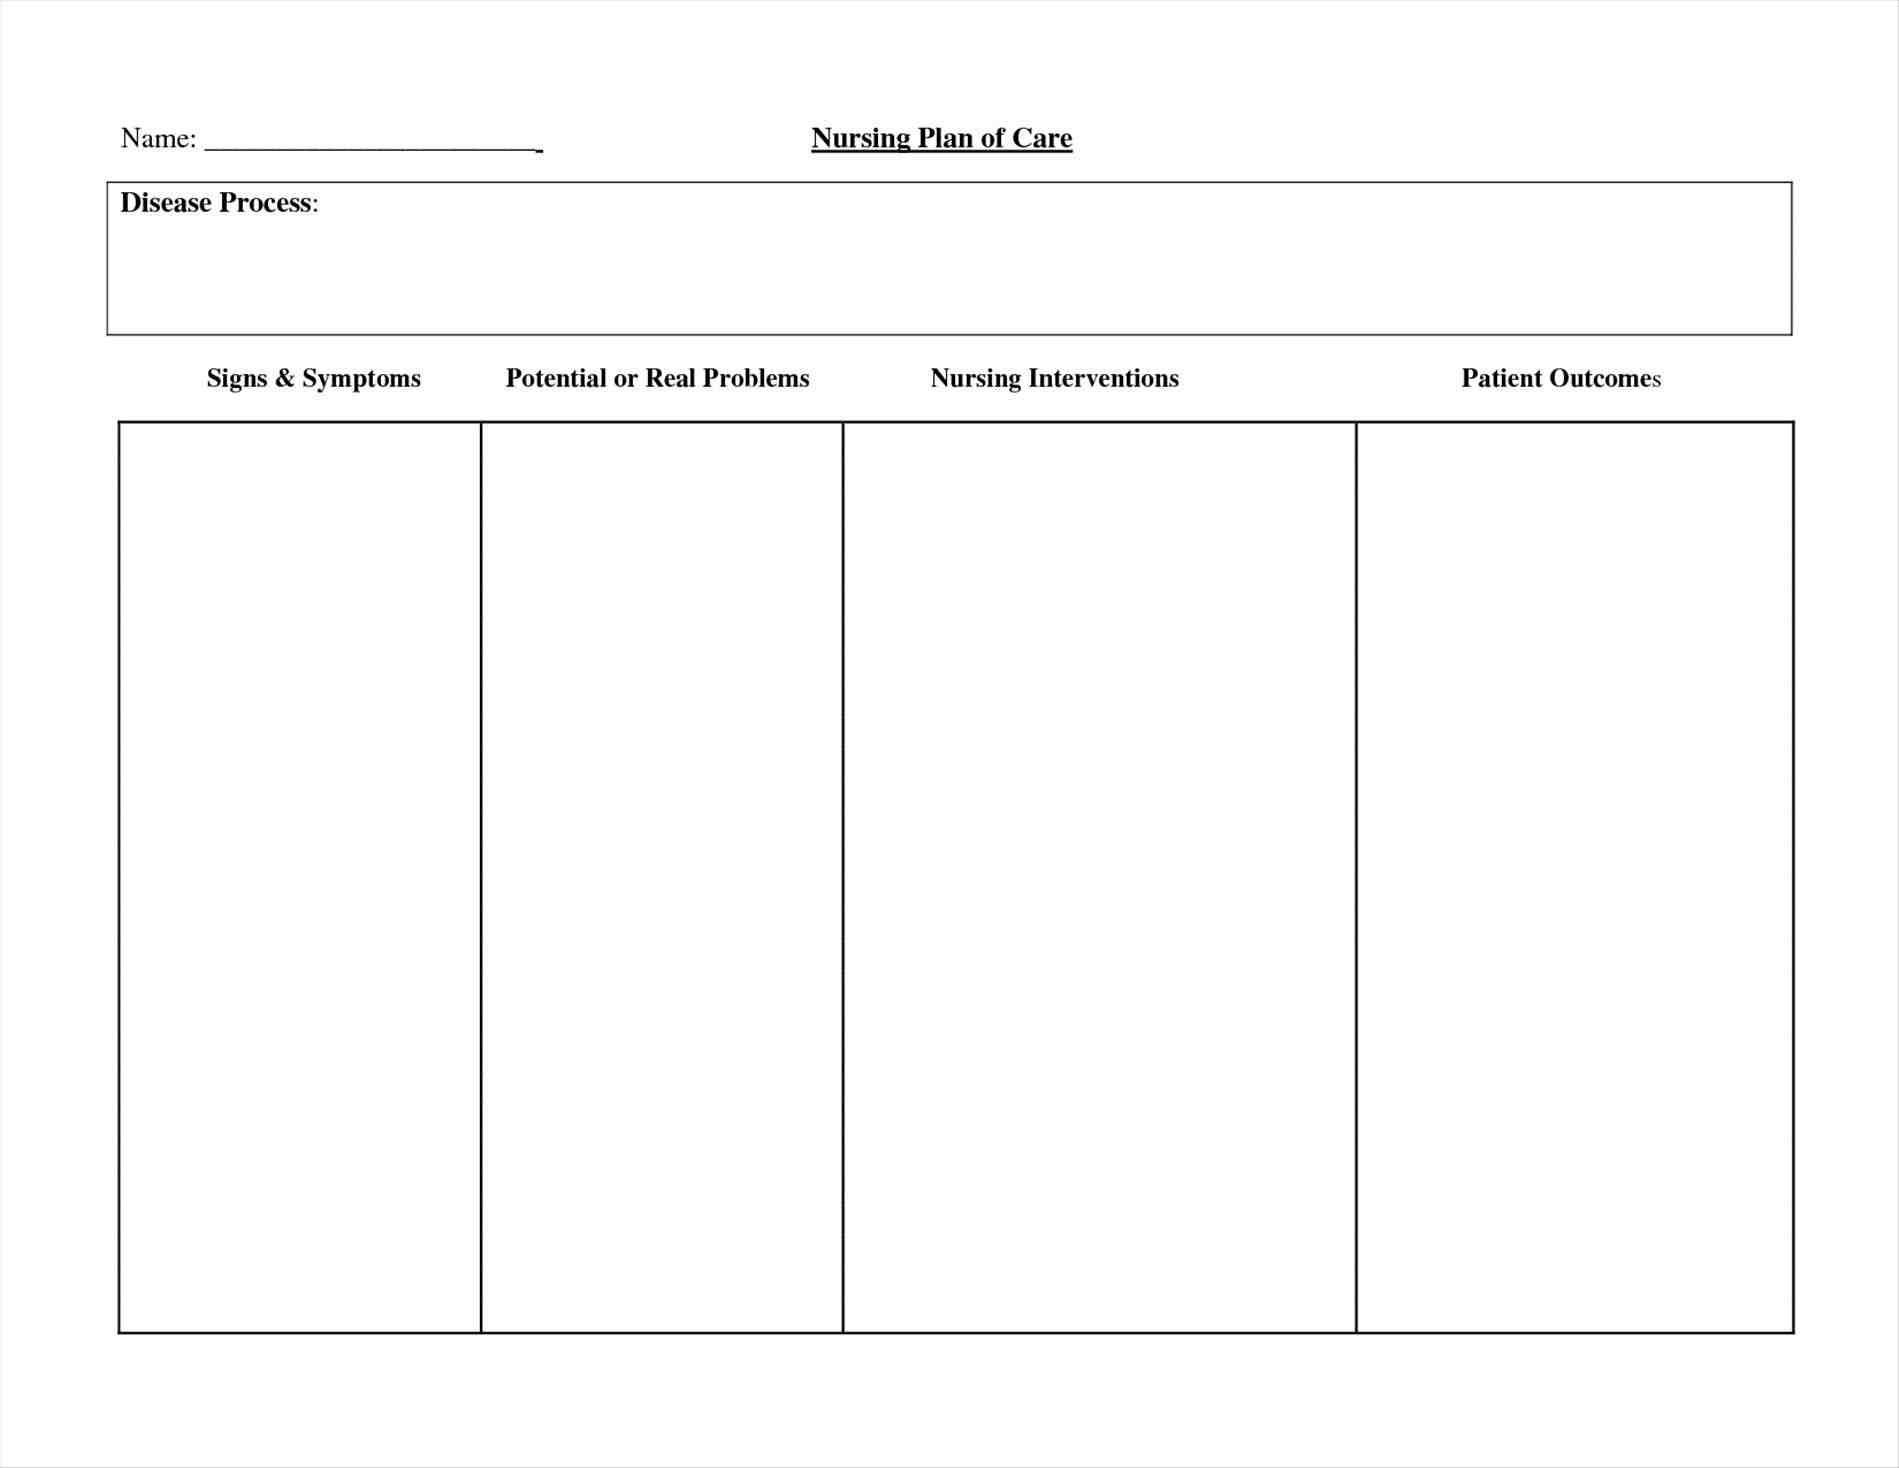 002 Impressive Nursing Care Plan Template Image  Free Pdf DownloadFull